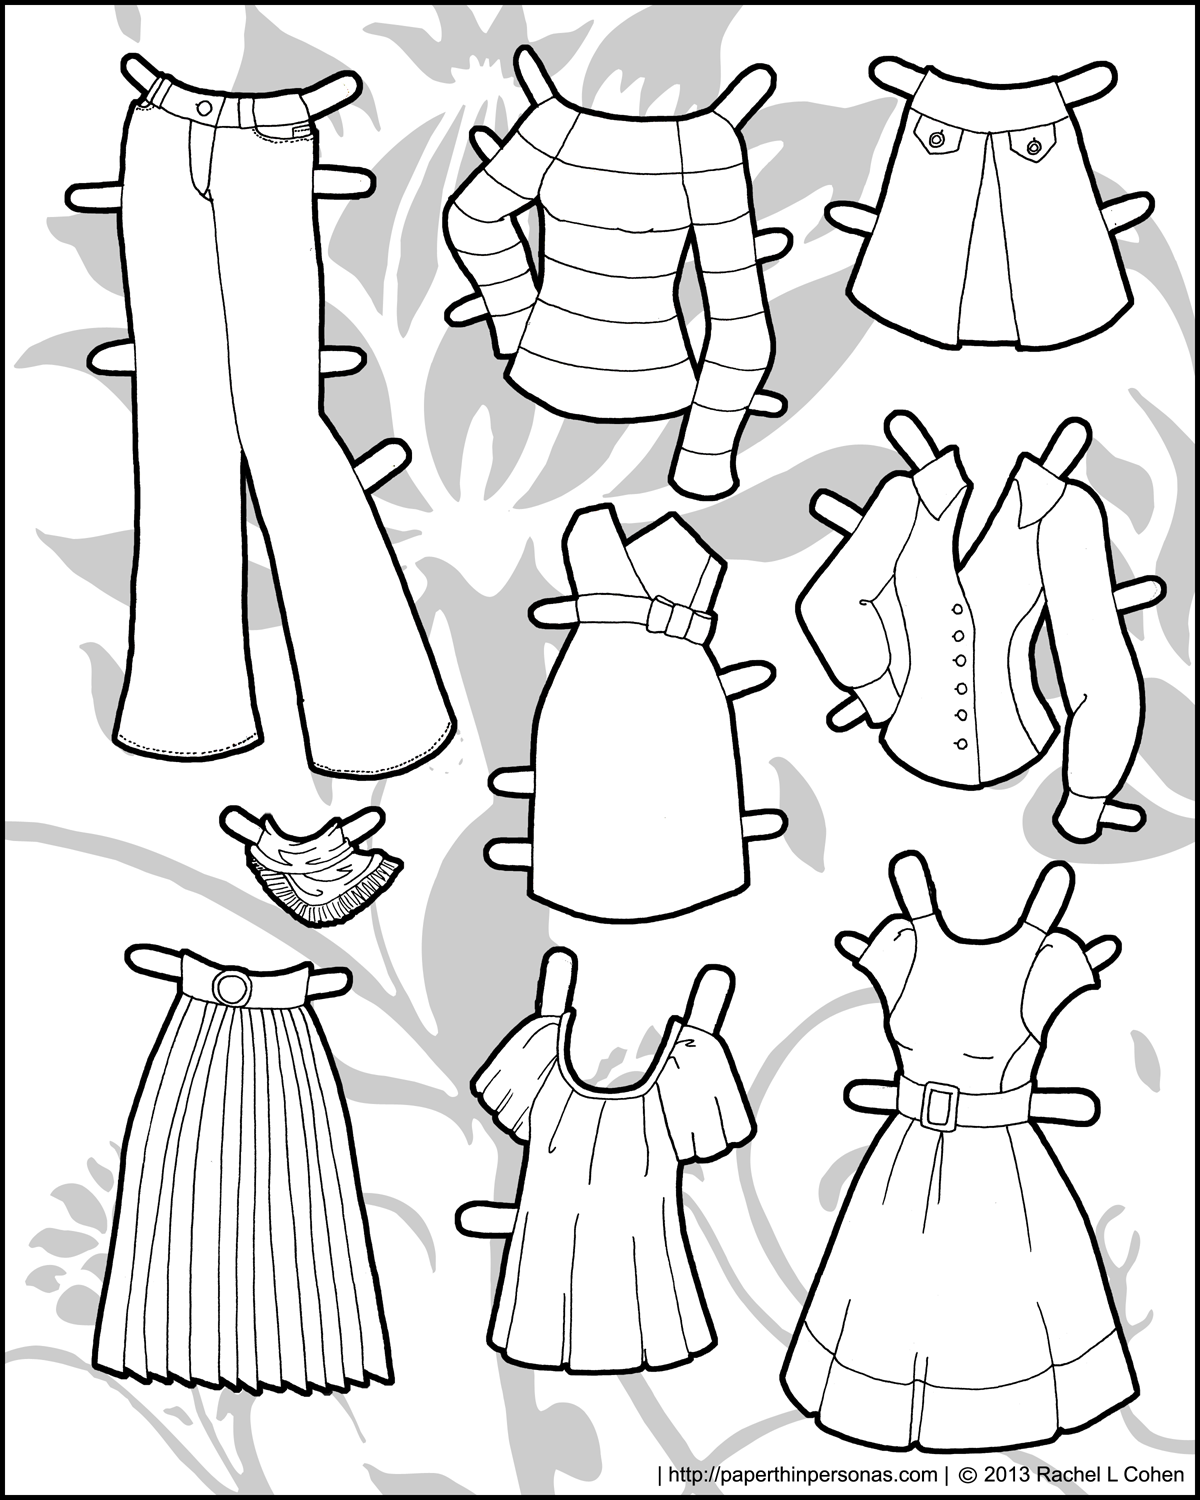 dress up paper dolls printable marisole monday friends archives paper thin personas up dress paper dolls printable